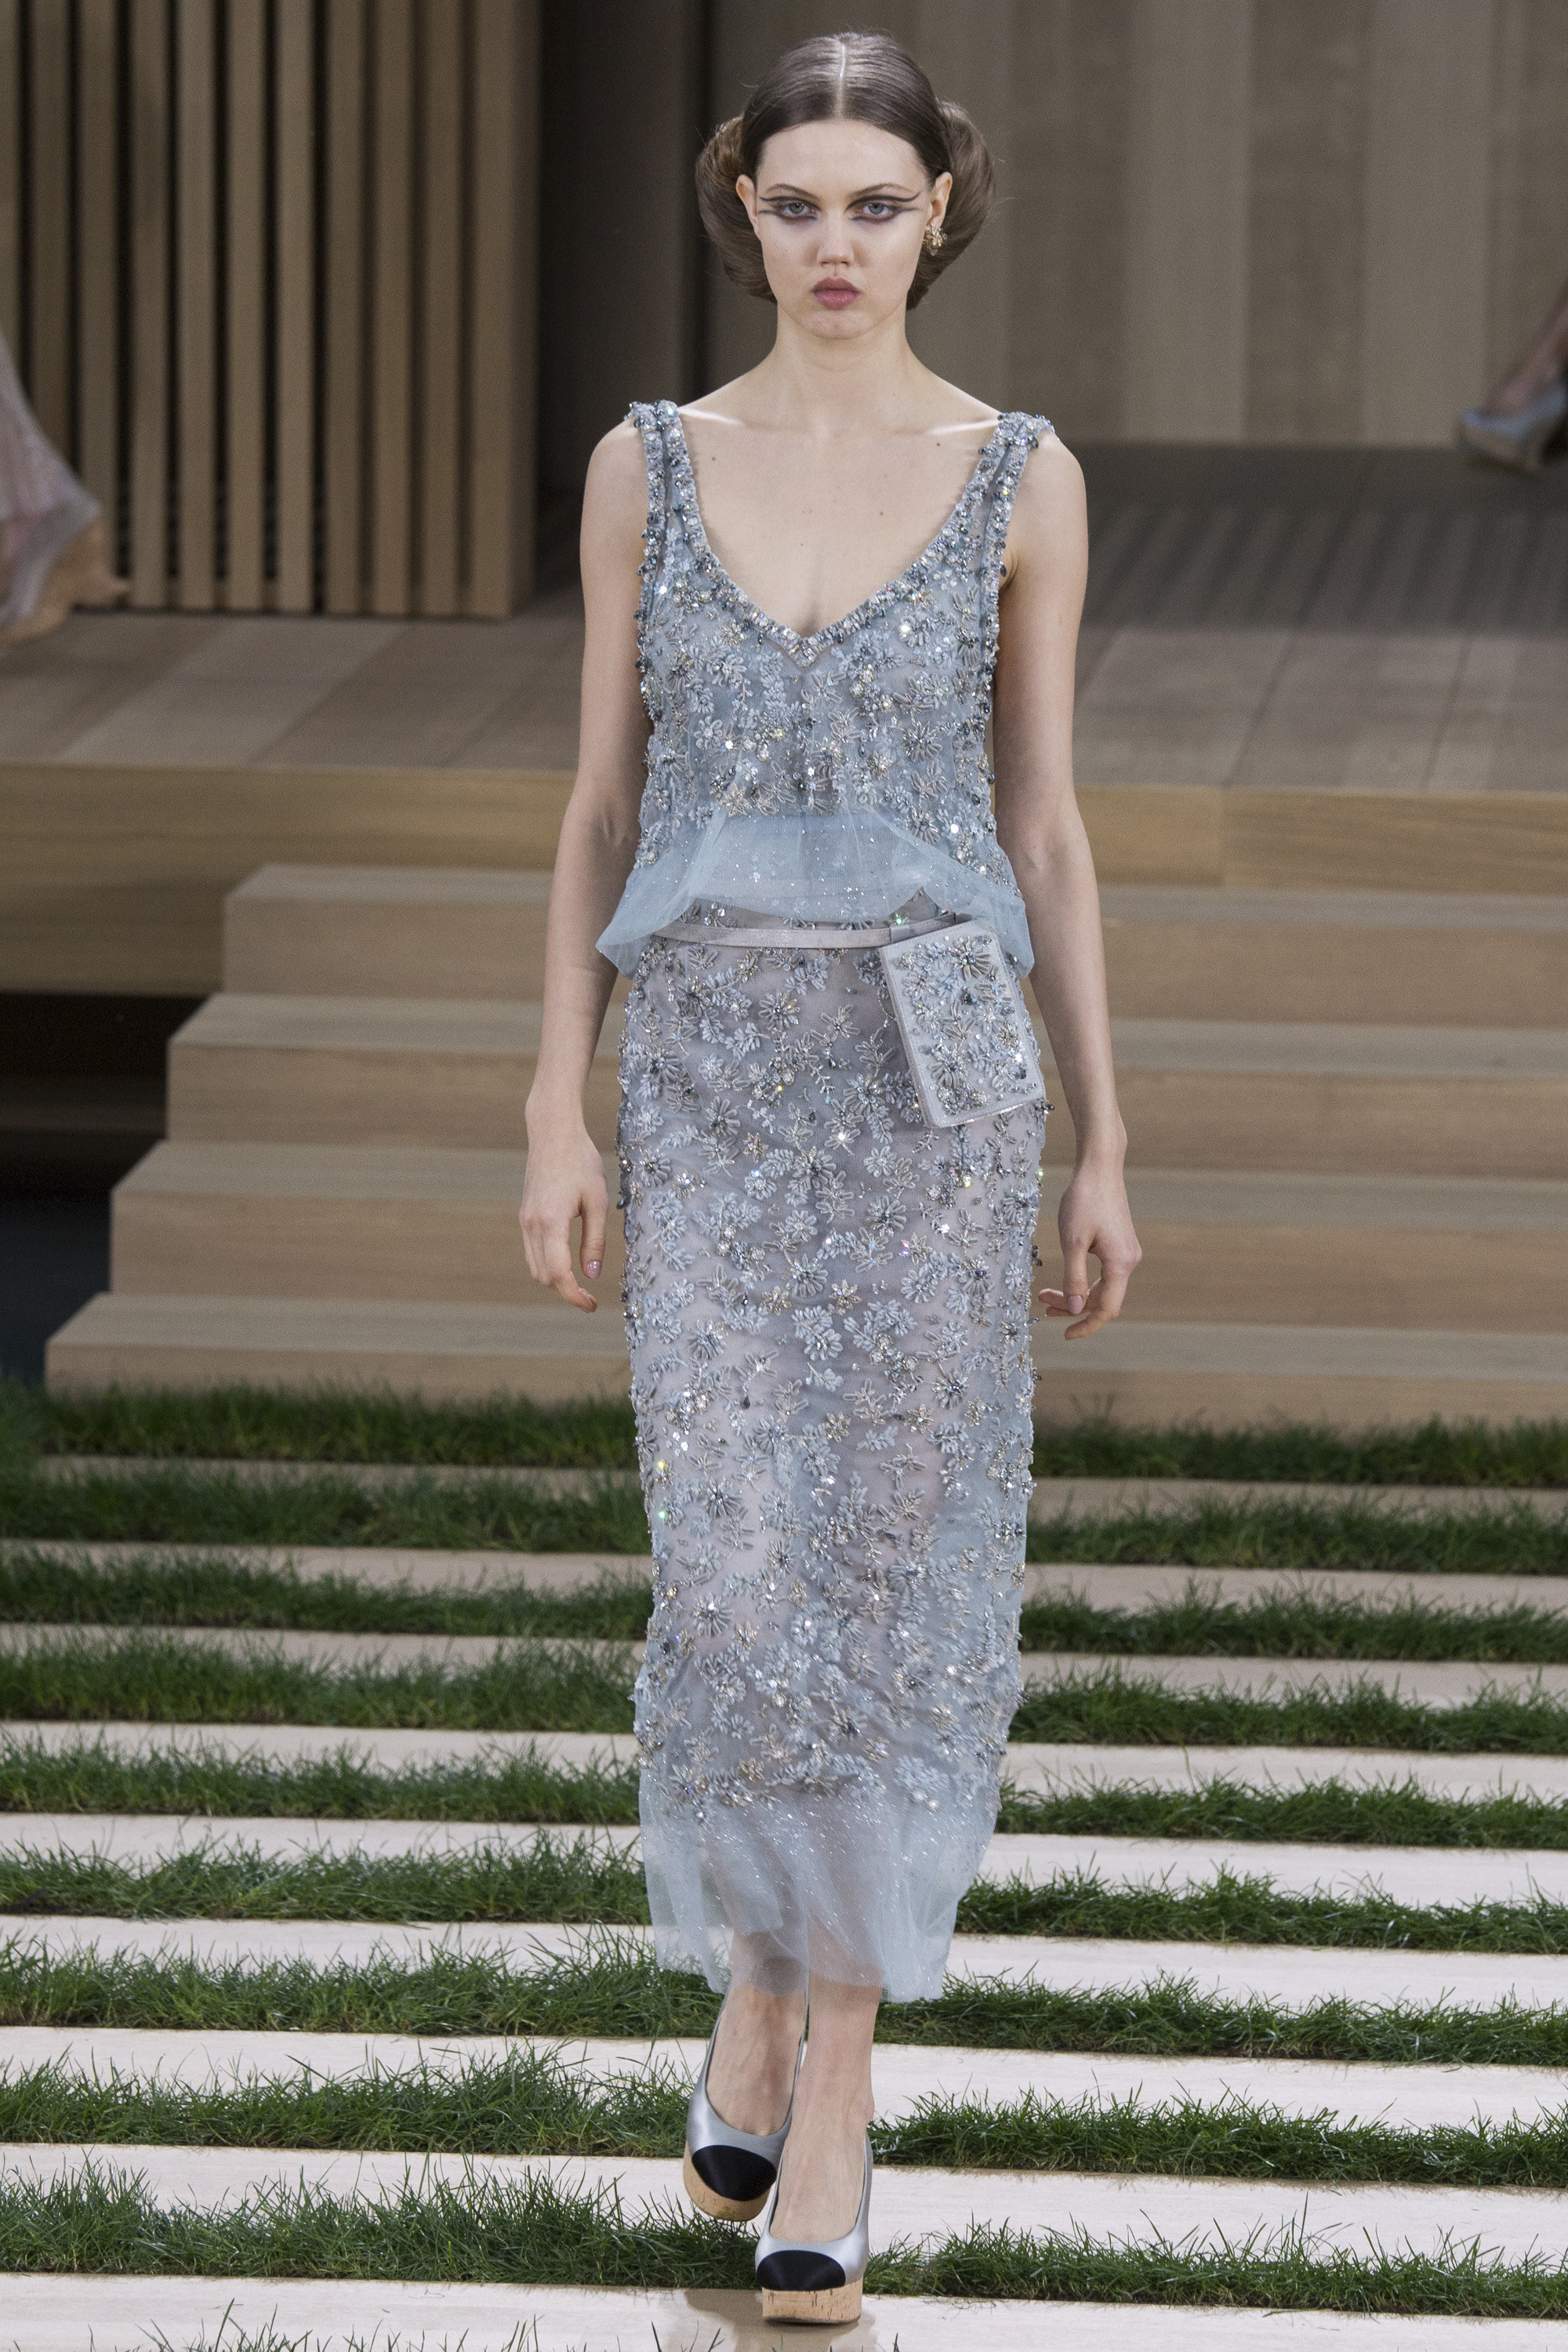 Chanel-Couture-Spring-2016-Paris-Fashion-Week-21.jpg